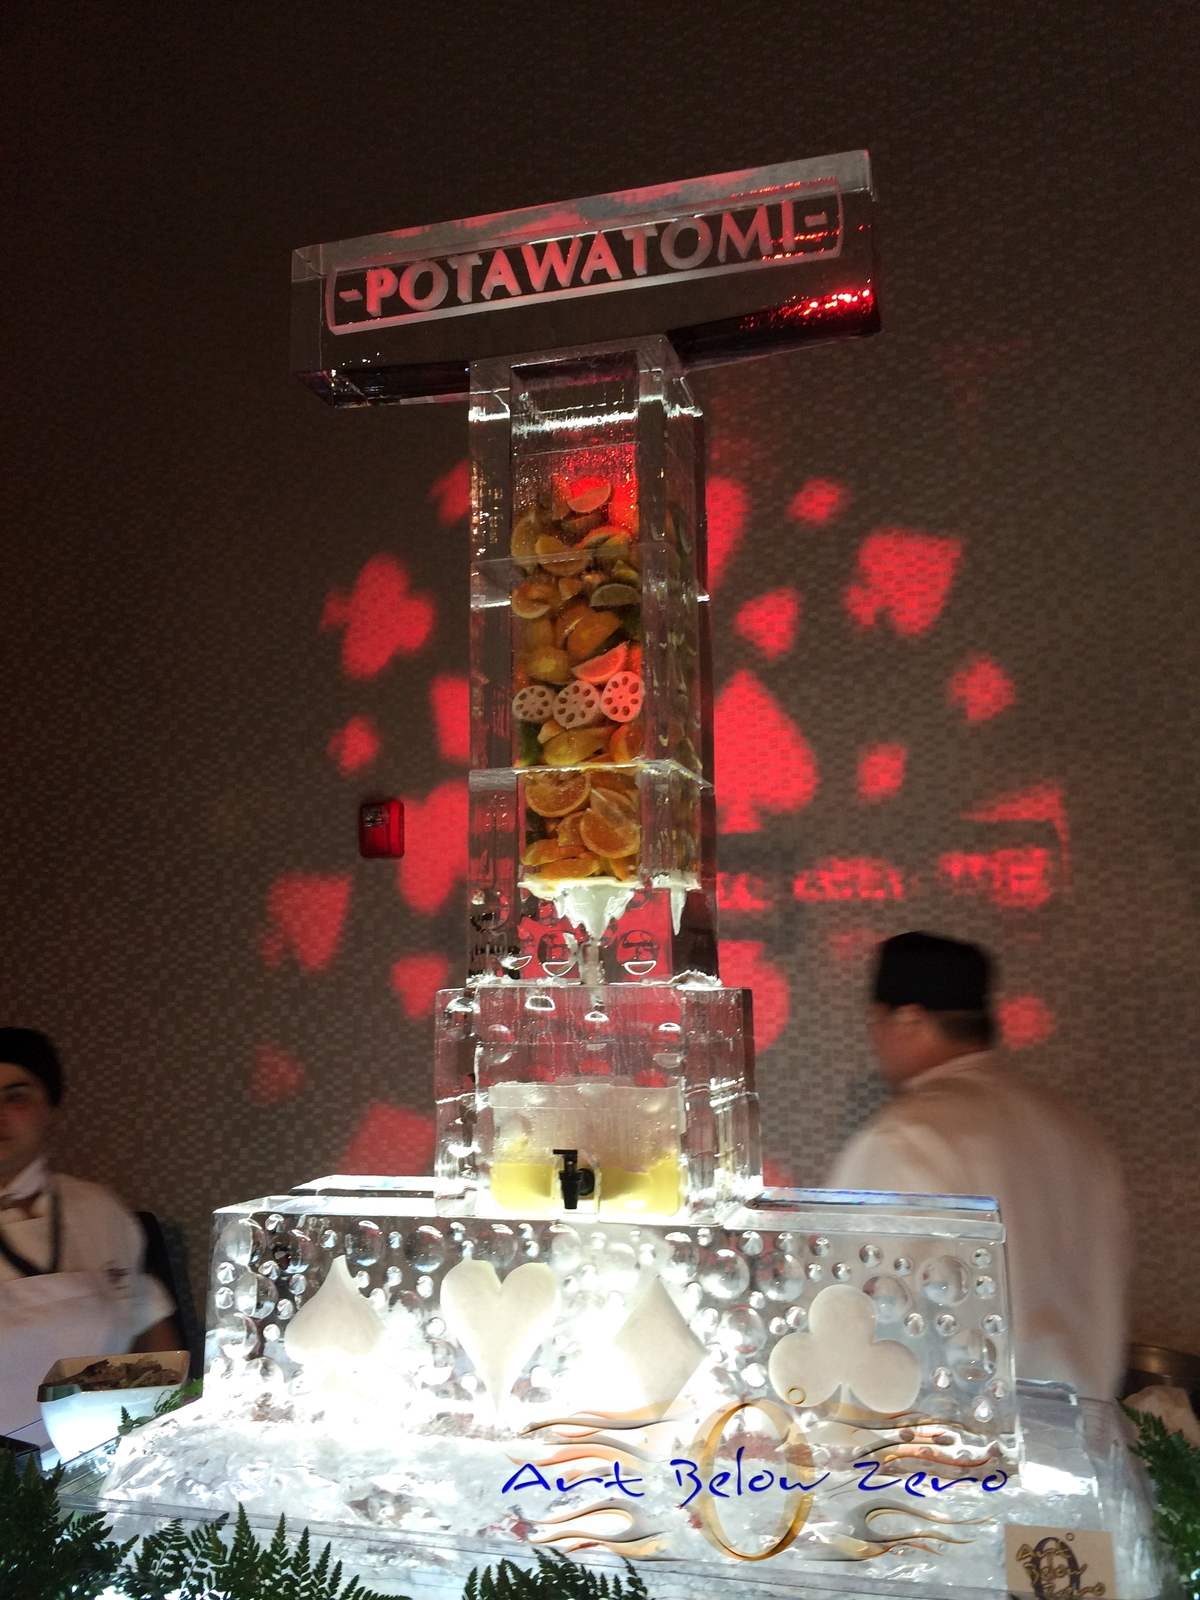 Savory_infuser_ice_sculpture_at_the_grand_opening_of_the_hotel_at_potawatomi_casino